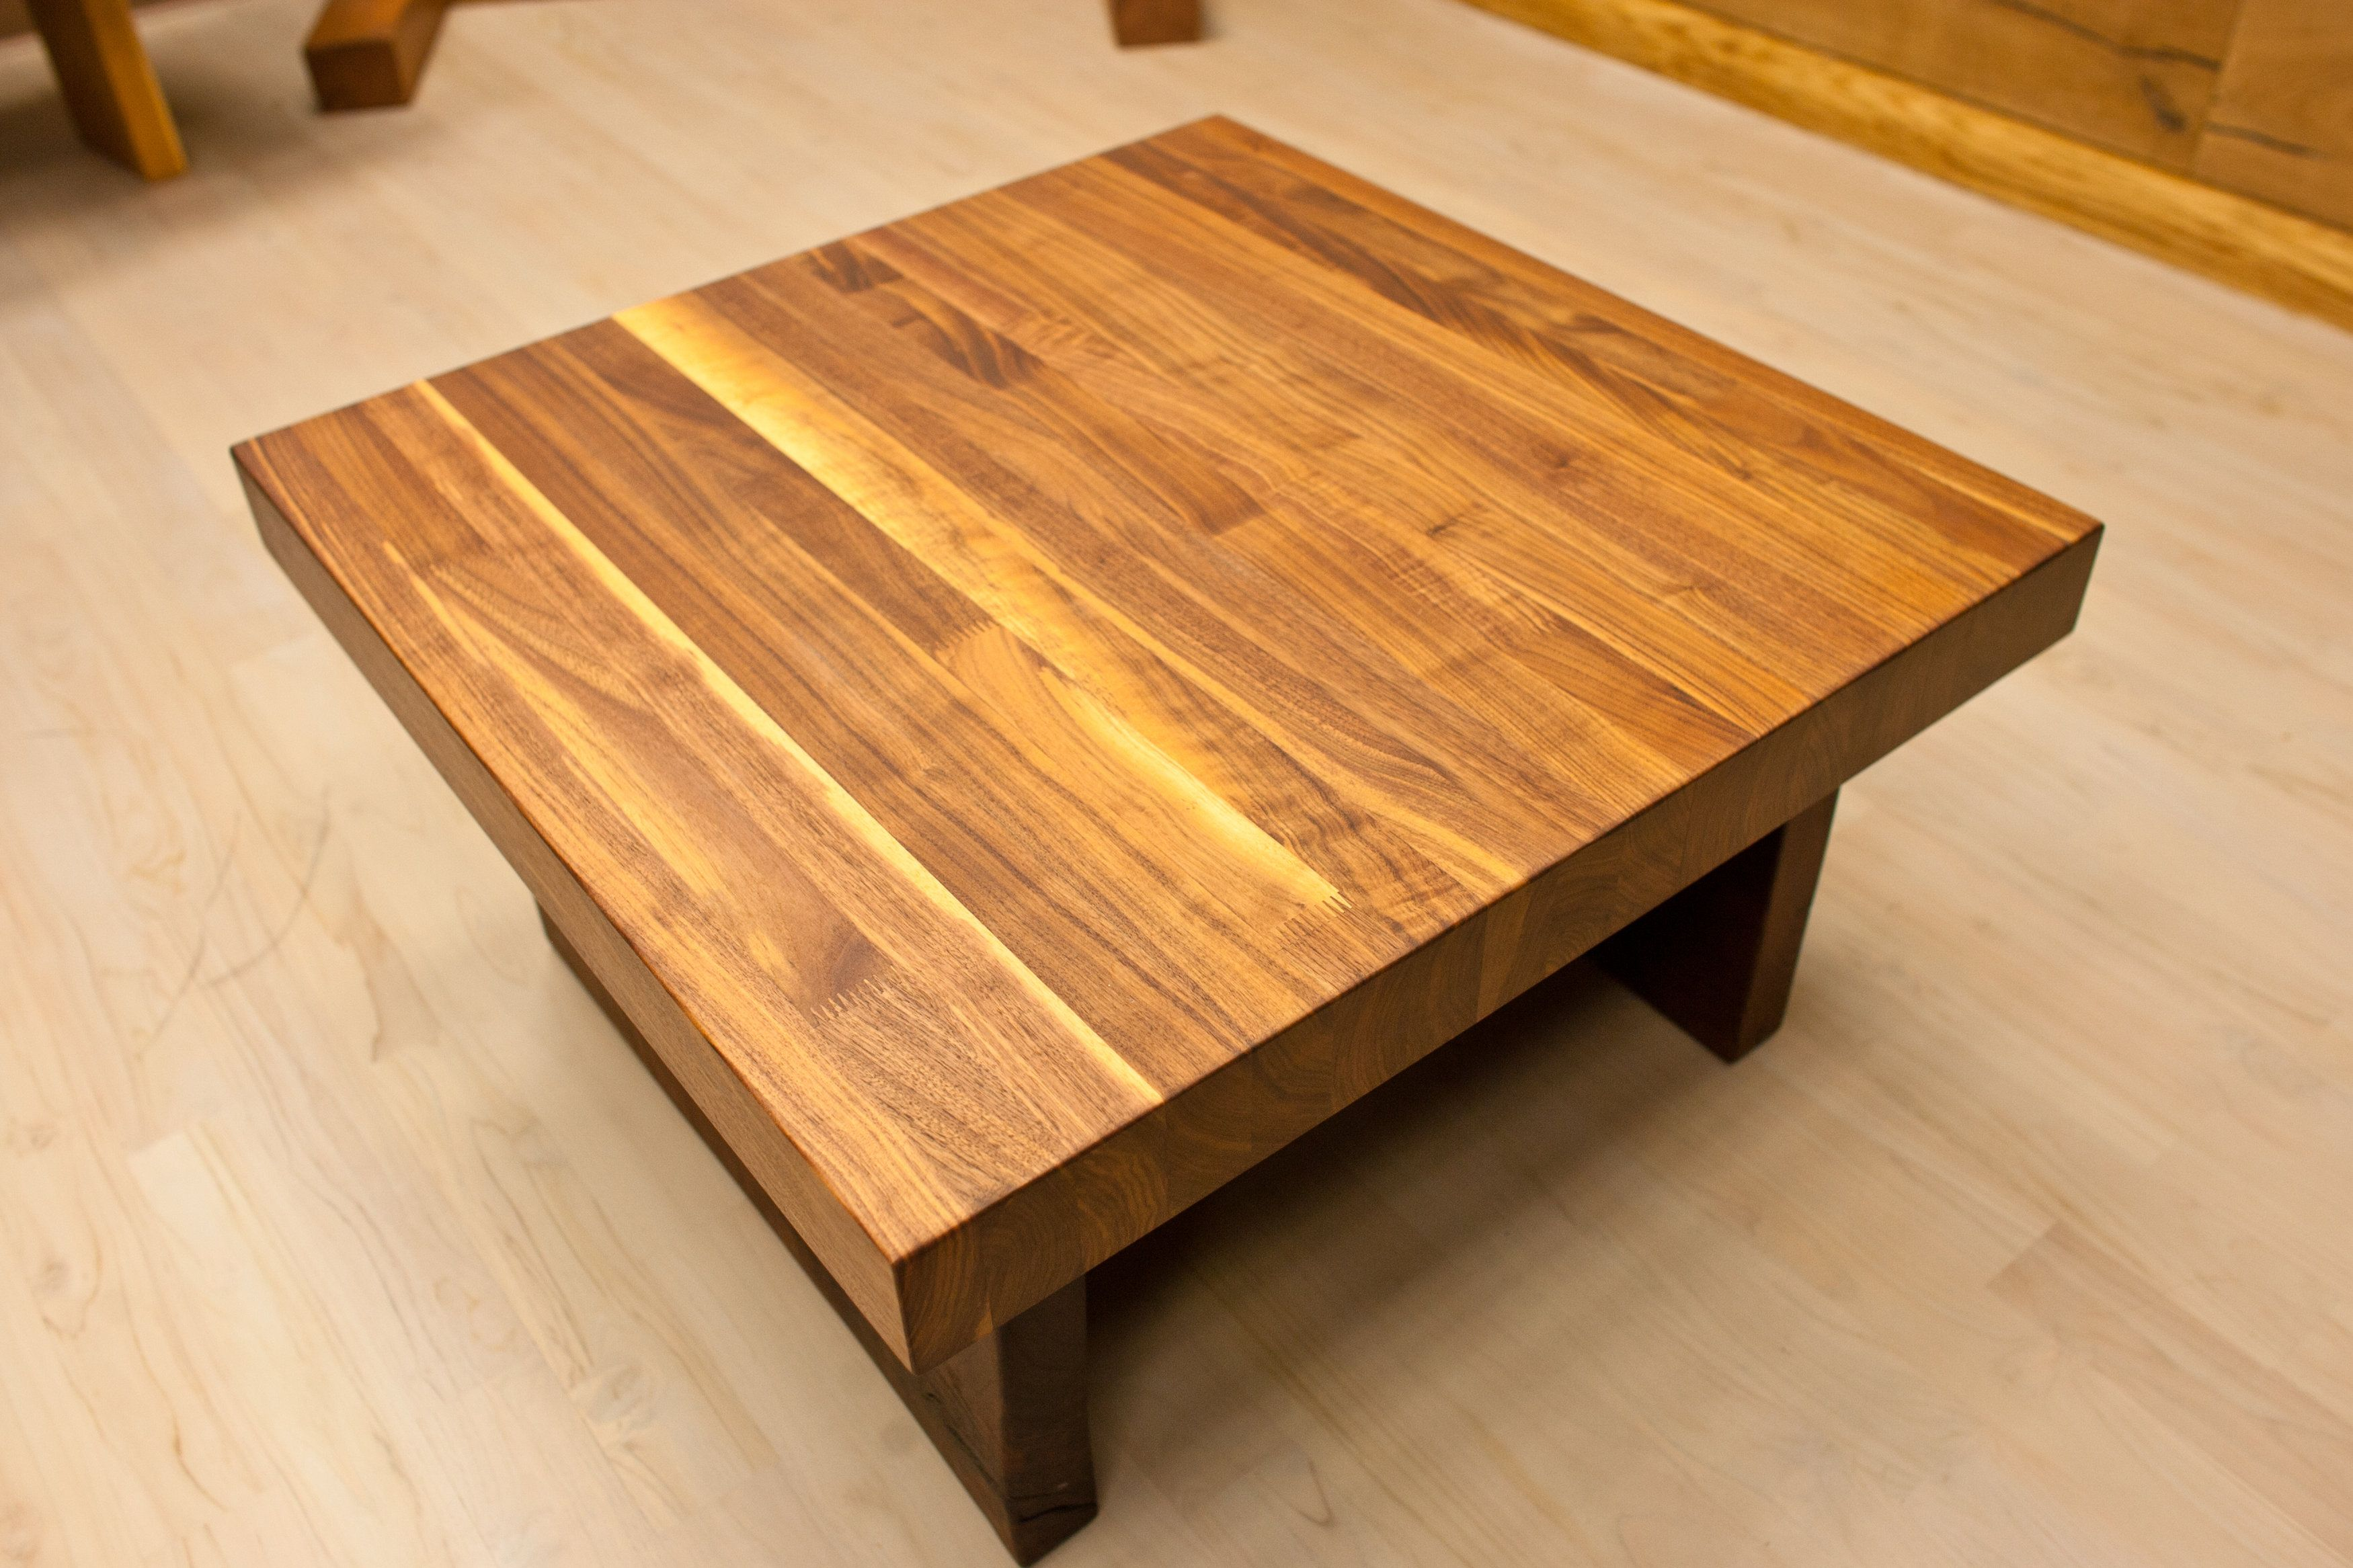 Home design furniture square hardwood coffee table small living room - Dfs Cracked Glass Coffee Table Lounge Ideas Pinterest Lounge Ideas Living Rooms And Room